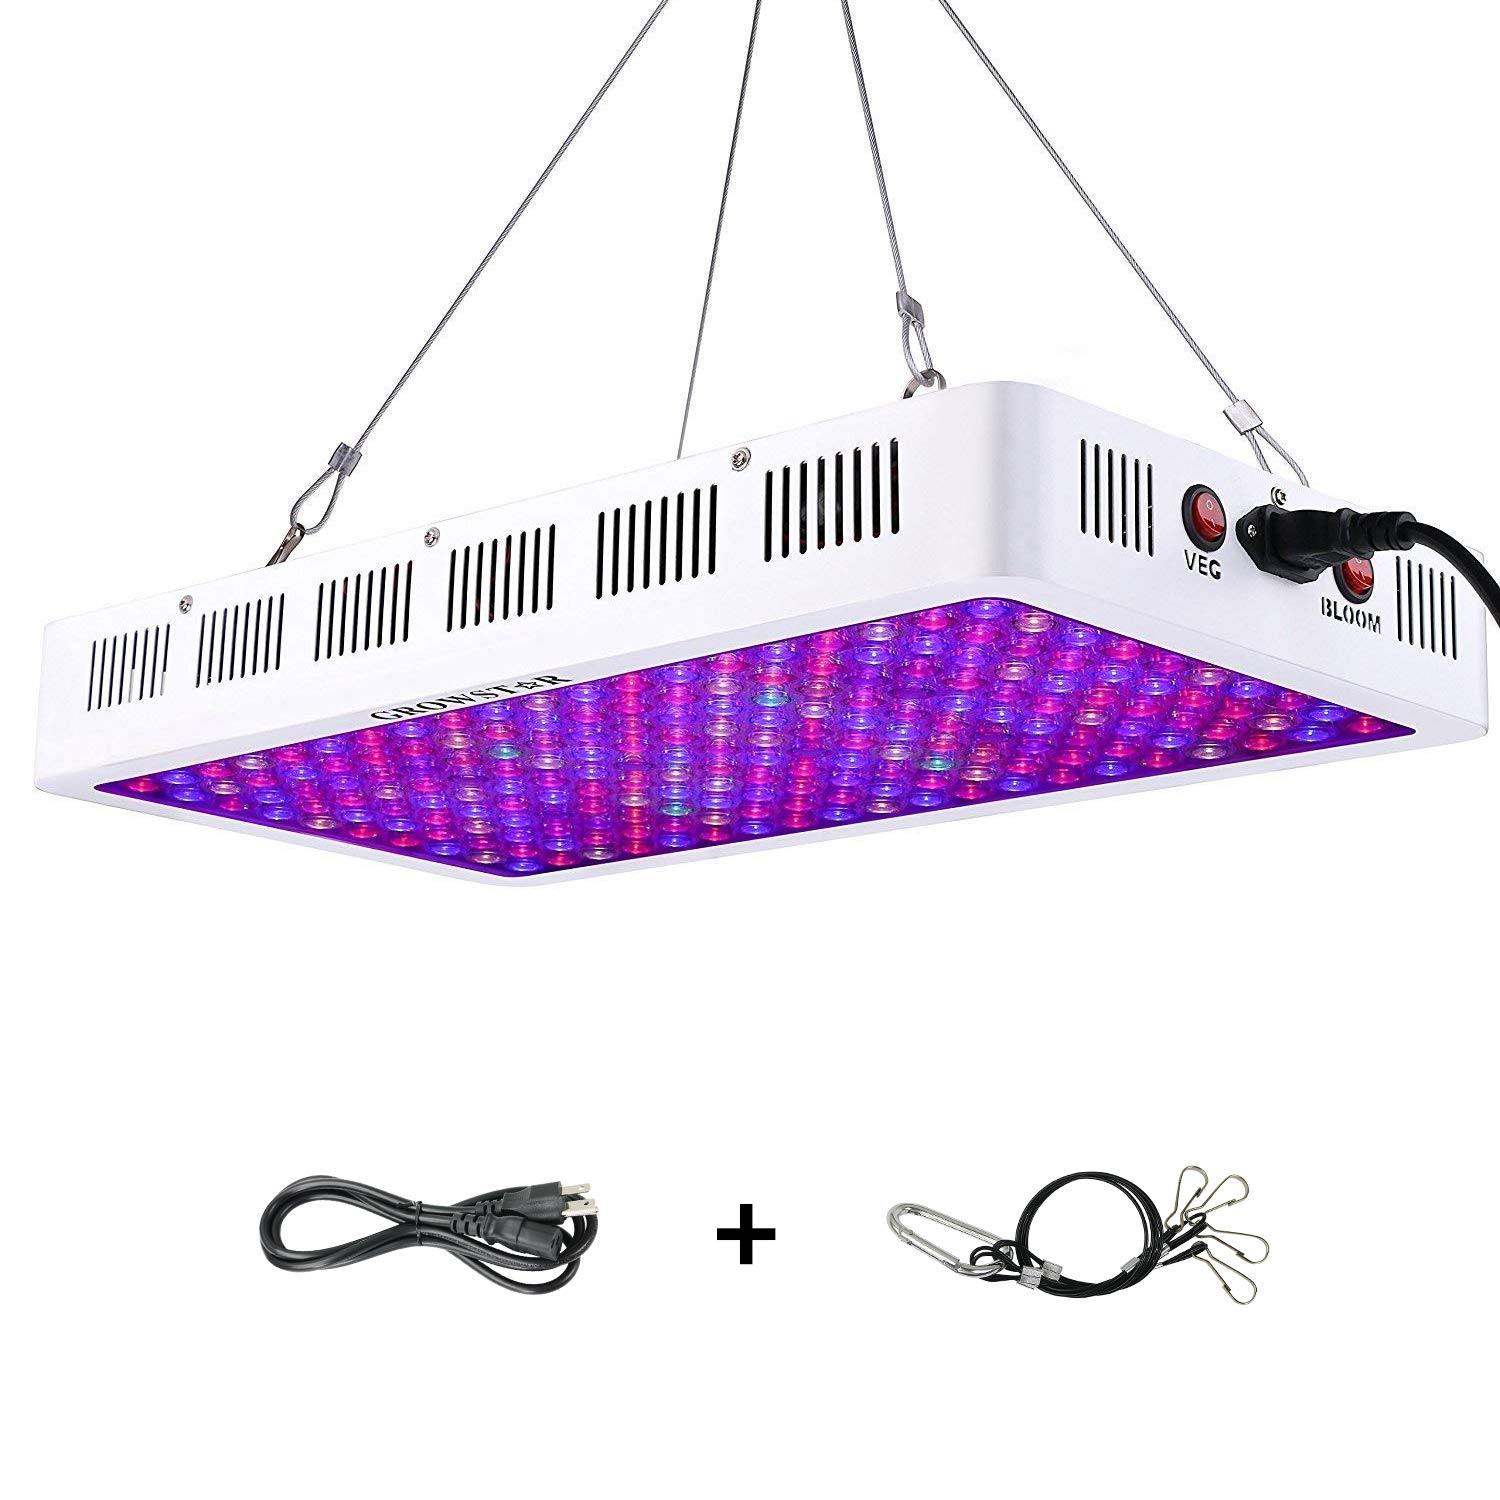 Growstar 1000w LED grow light along with an optical lens